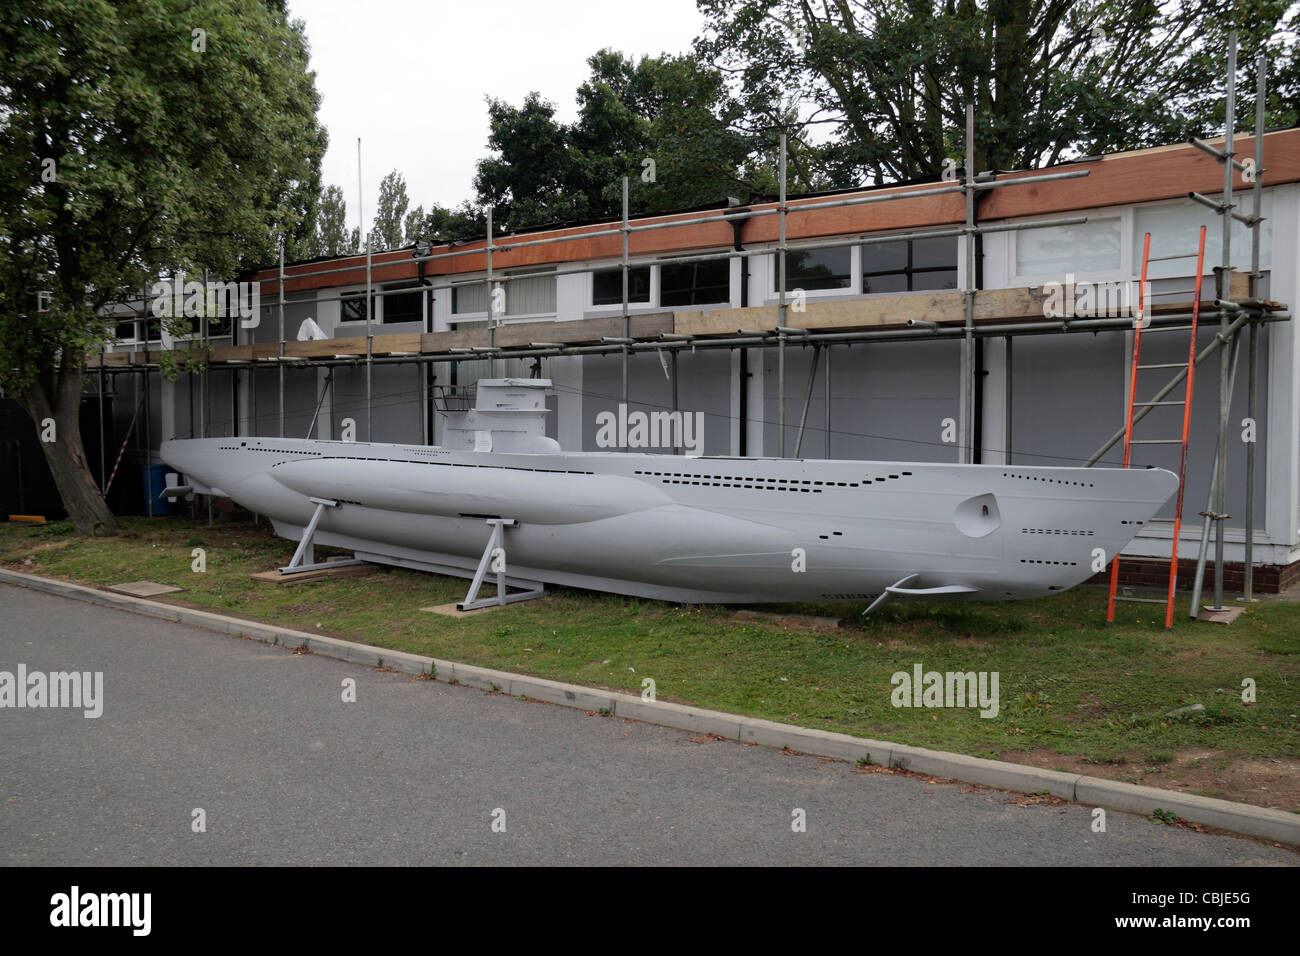 A scale model of a German World War II U-boat in the grounds